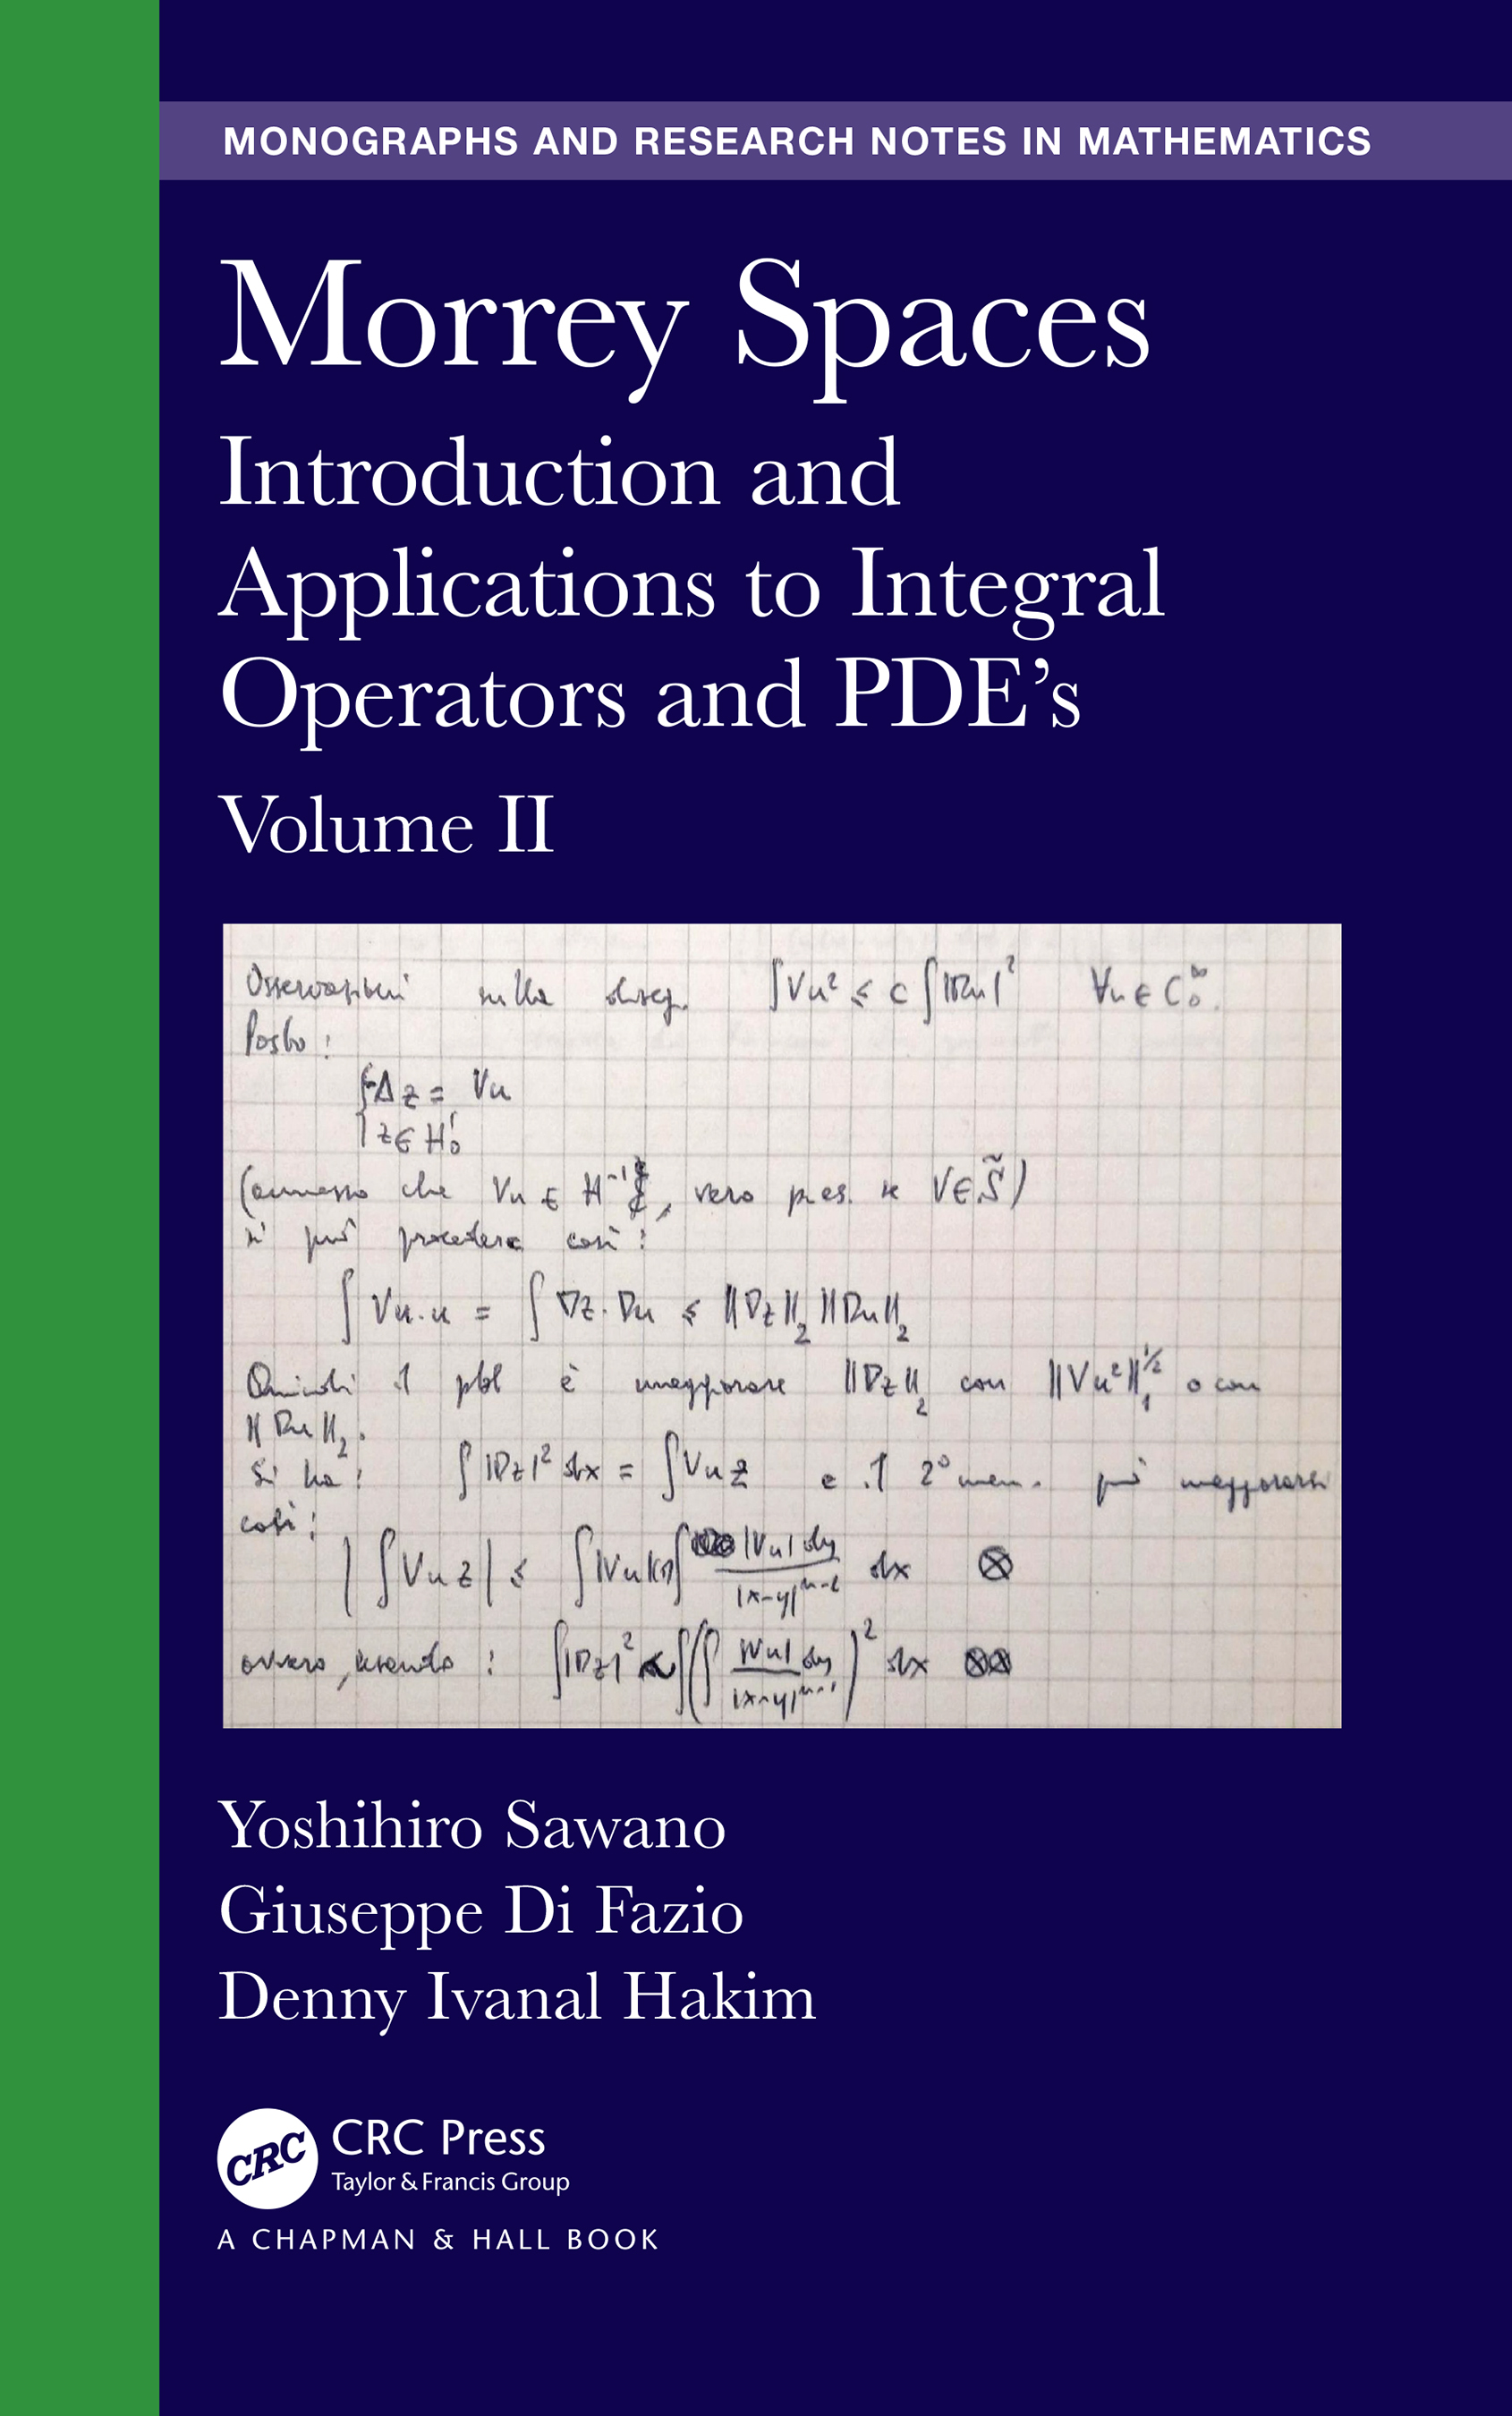 Morrey Spaces: Introduction and Applications to Integral Operators and PDE's, Volume II book cover